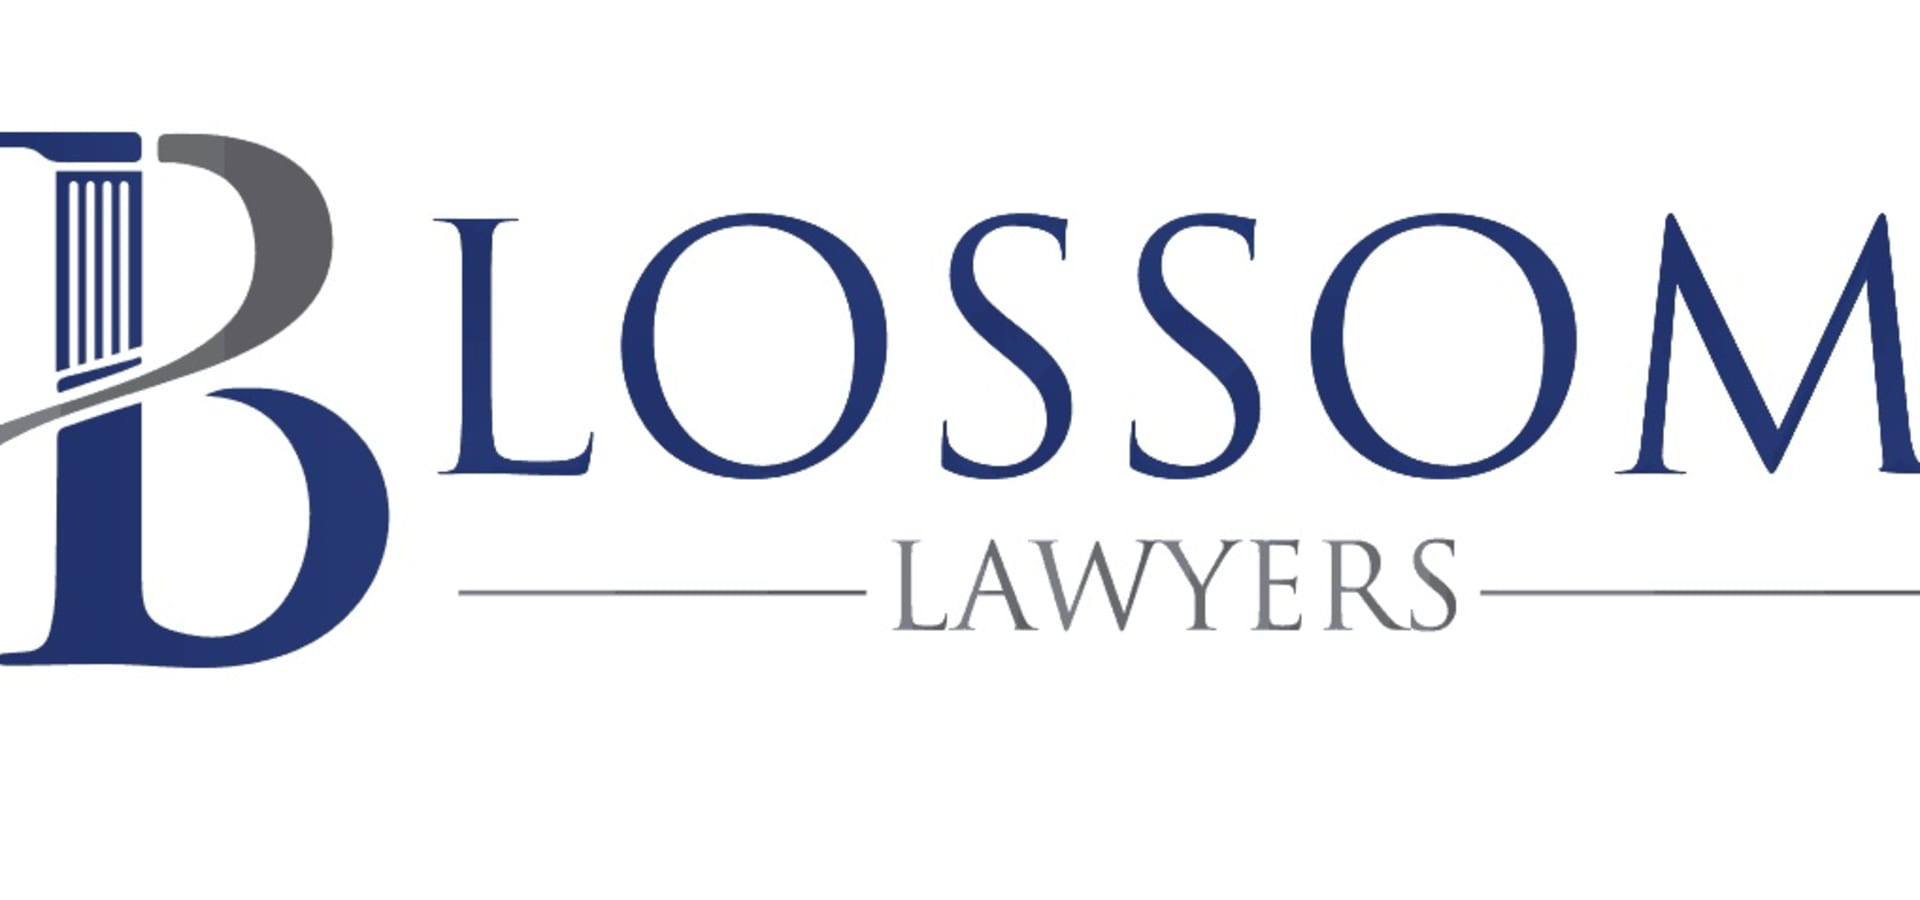 Blossom Lawyers